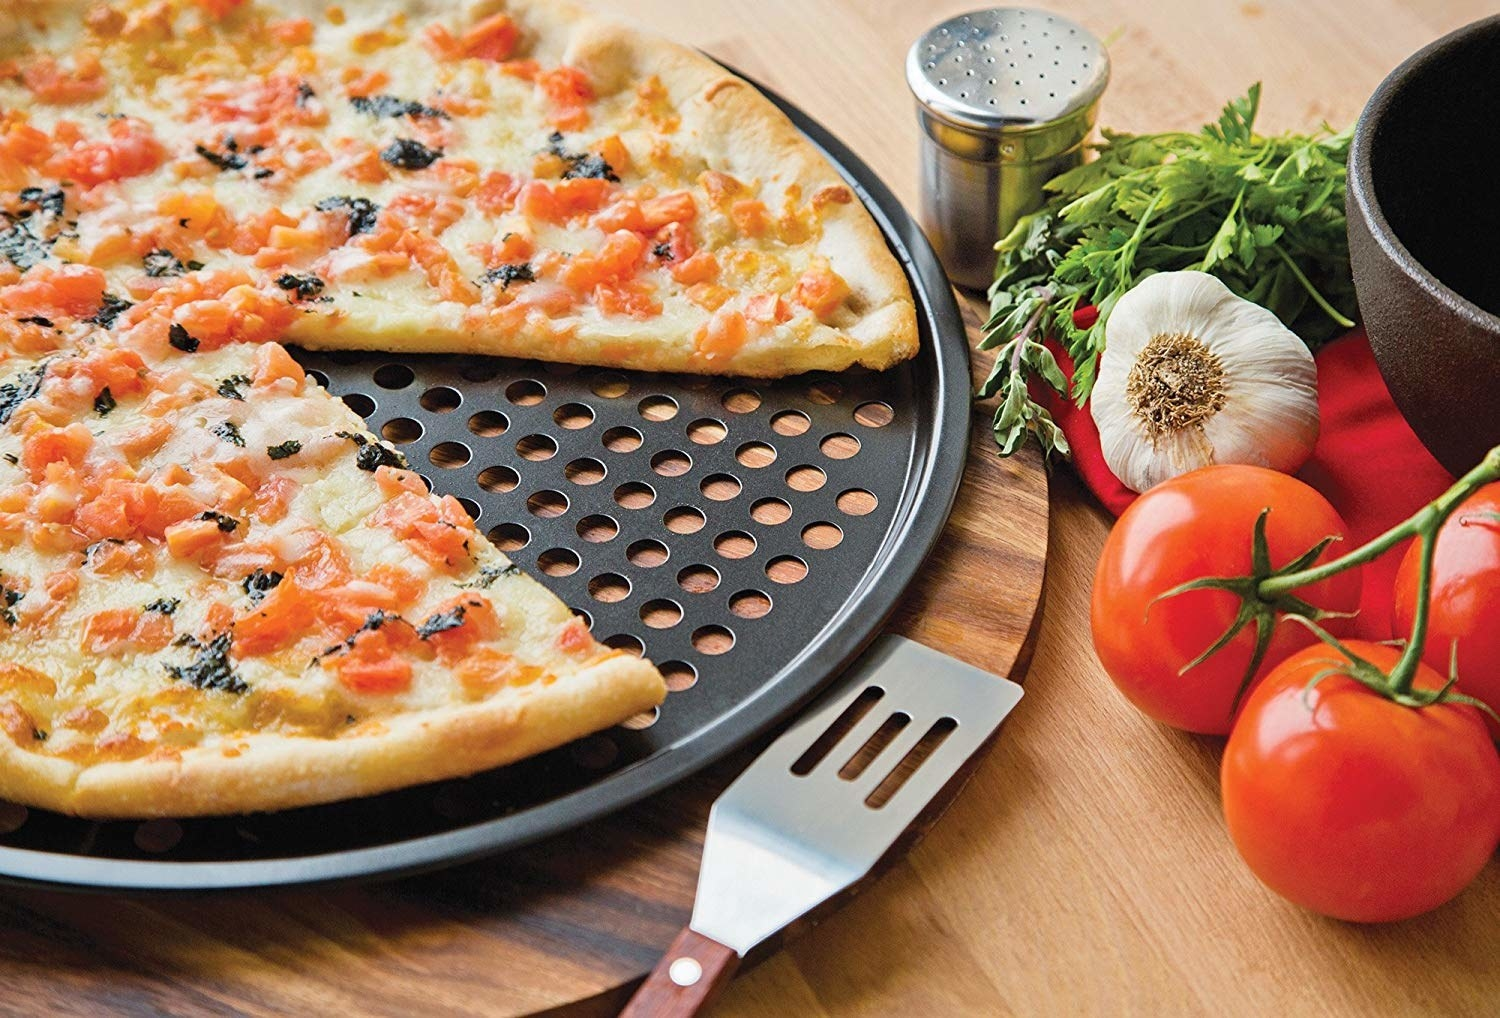 A thin-crust pizza on the round pan with holes in it